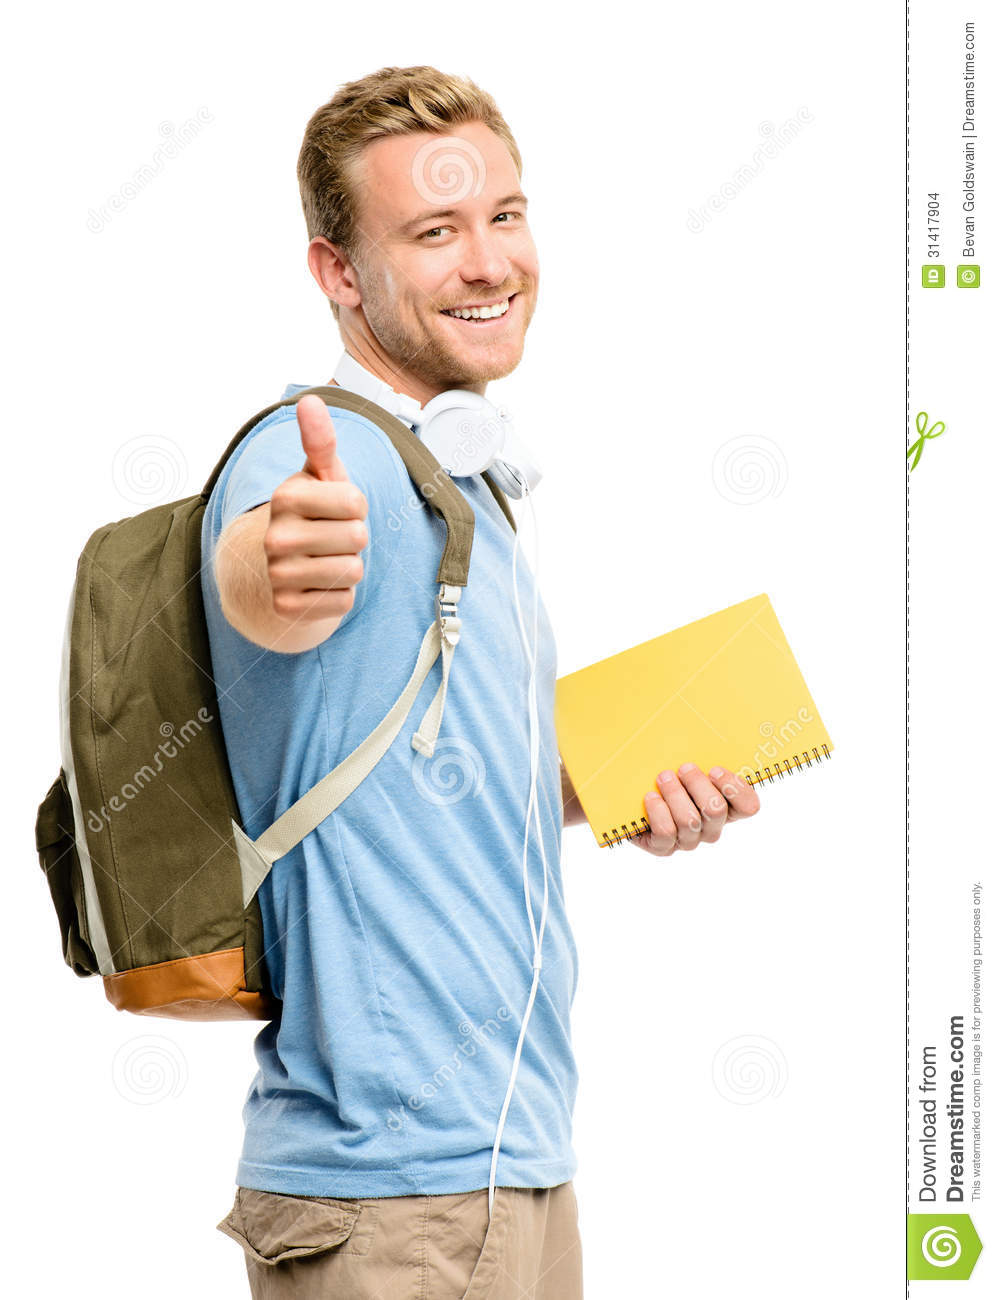 Student thumbs up clipart picture library stock Student thumbs up clipart - ClipartFest picture library stock